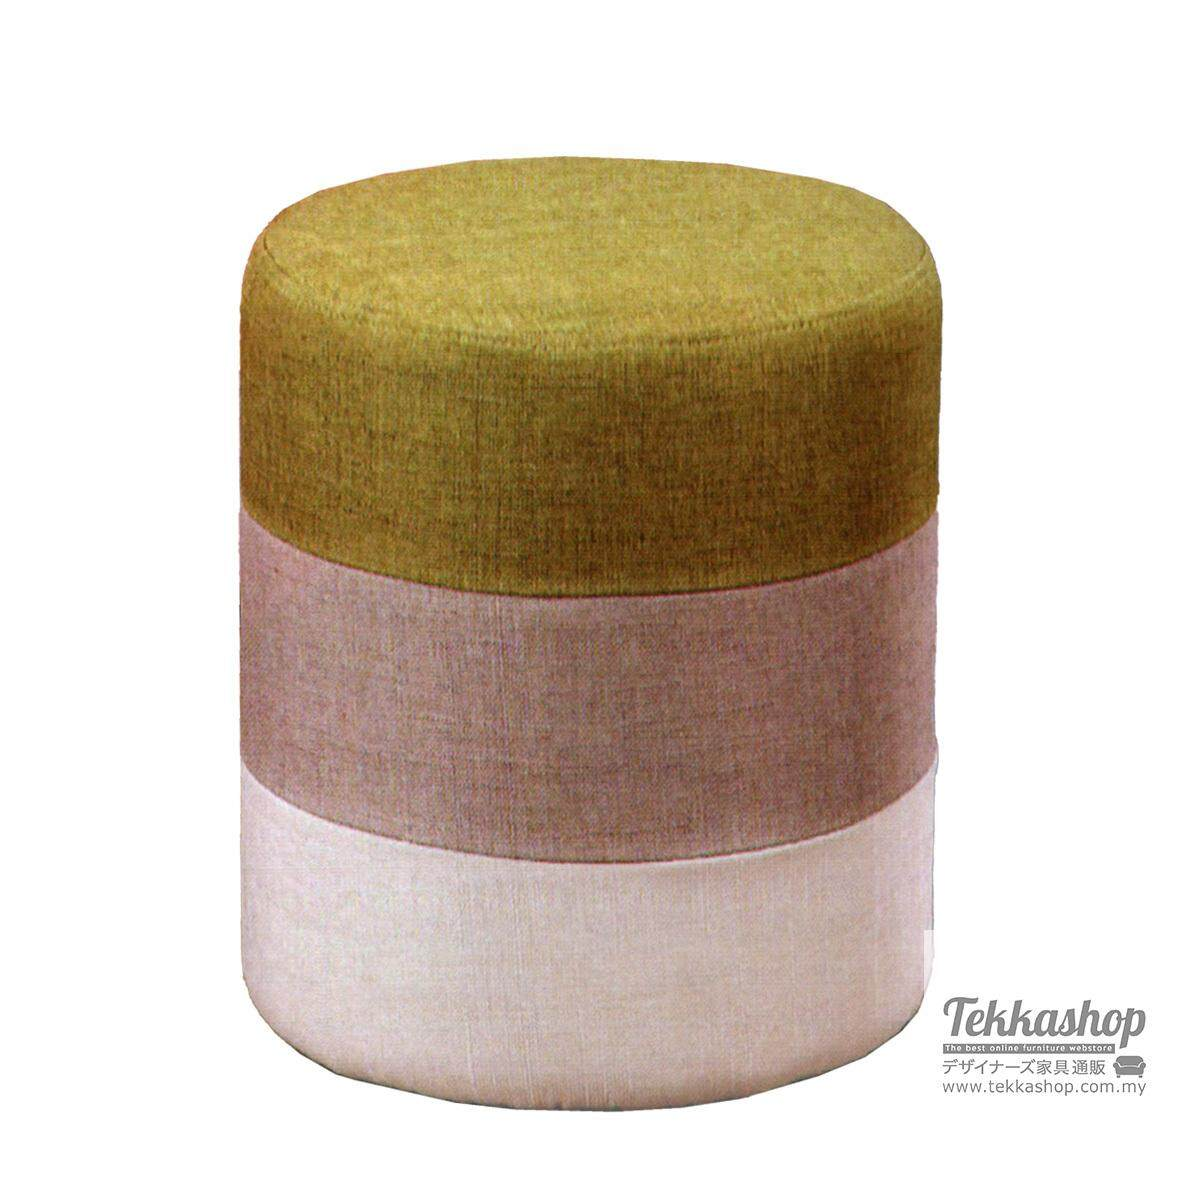 Tekkashop KKM882LC Fabric 3 Layers Round Cube Ottoman Foot Stool (Green)